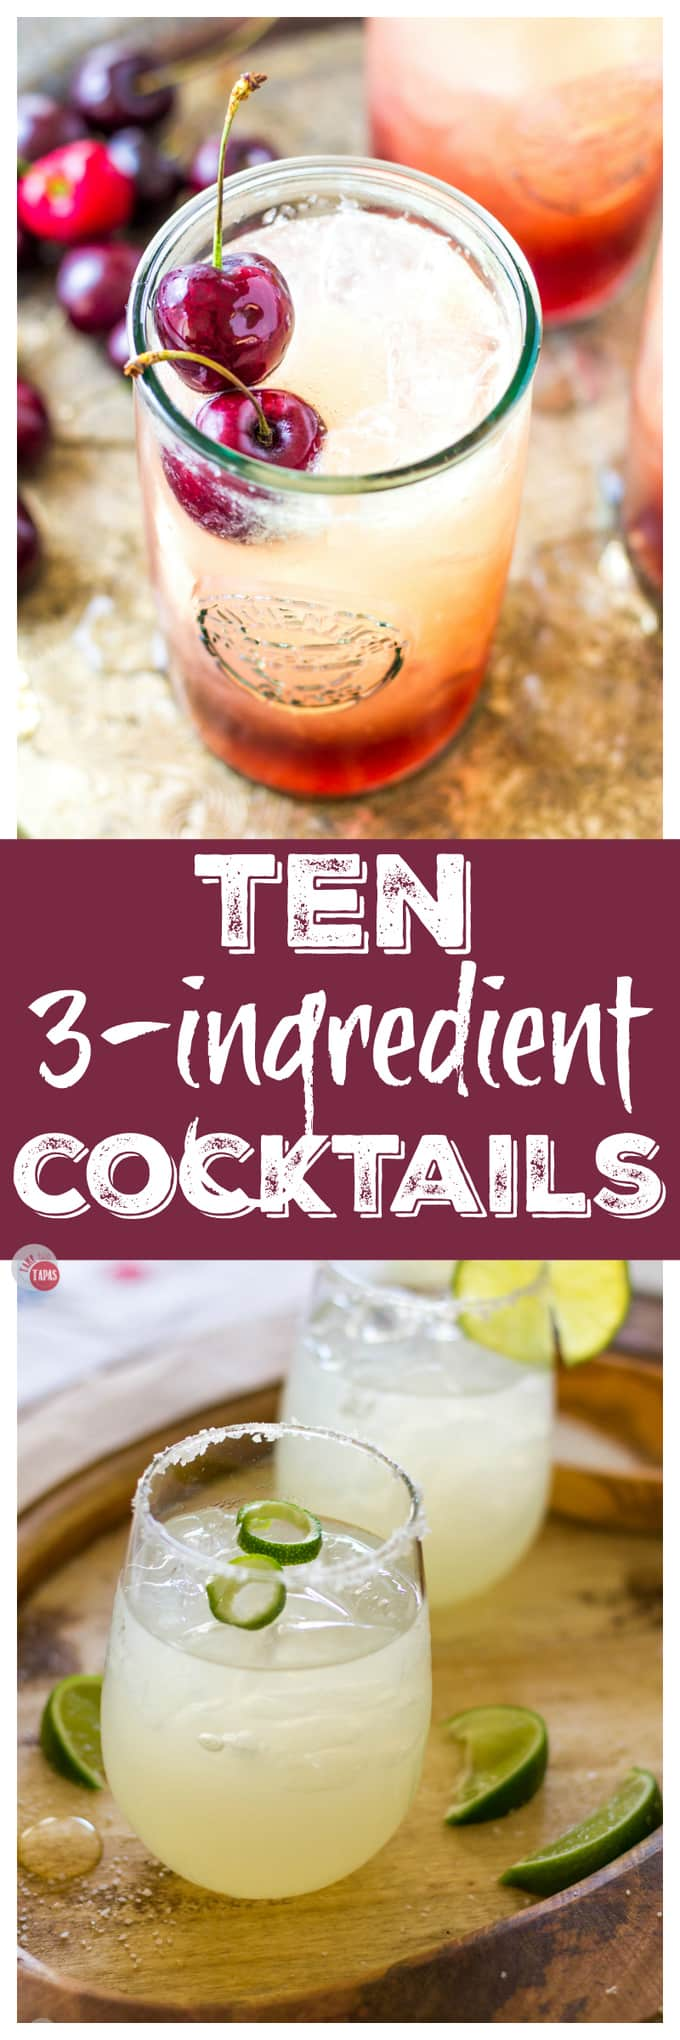 3 Ingredient Cocktails For Easy Entertaining And Quick Thirst Quenchers